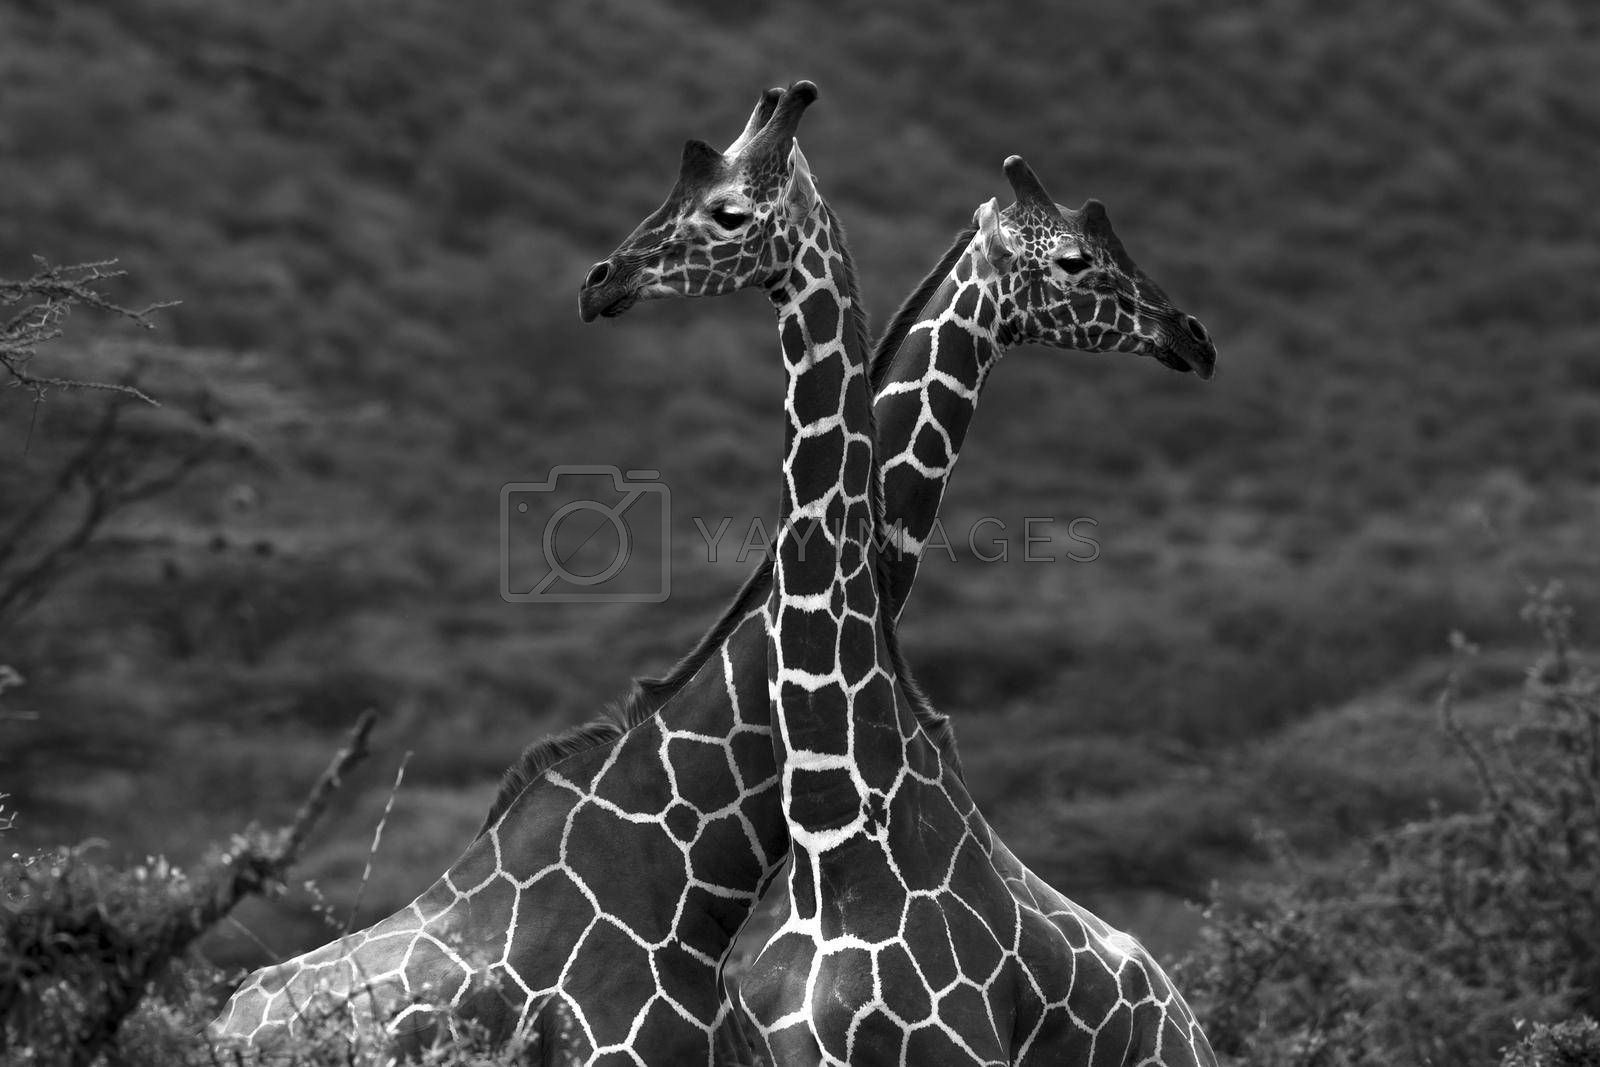 Portrait of Giraffes. Two Wild Animals with Long Necks  in the Wild. Black and White Photo. Safari. Gama Drive. Samburu National Reserve. Kenya. Africa.